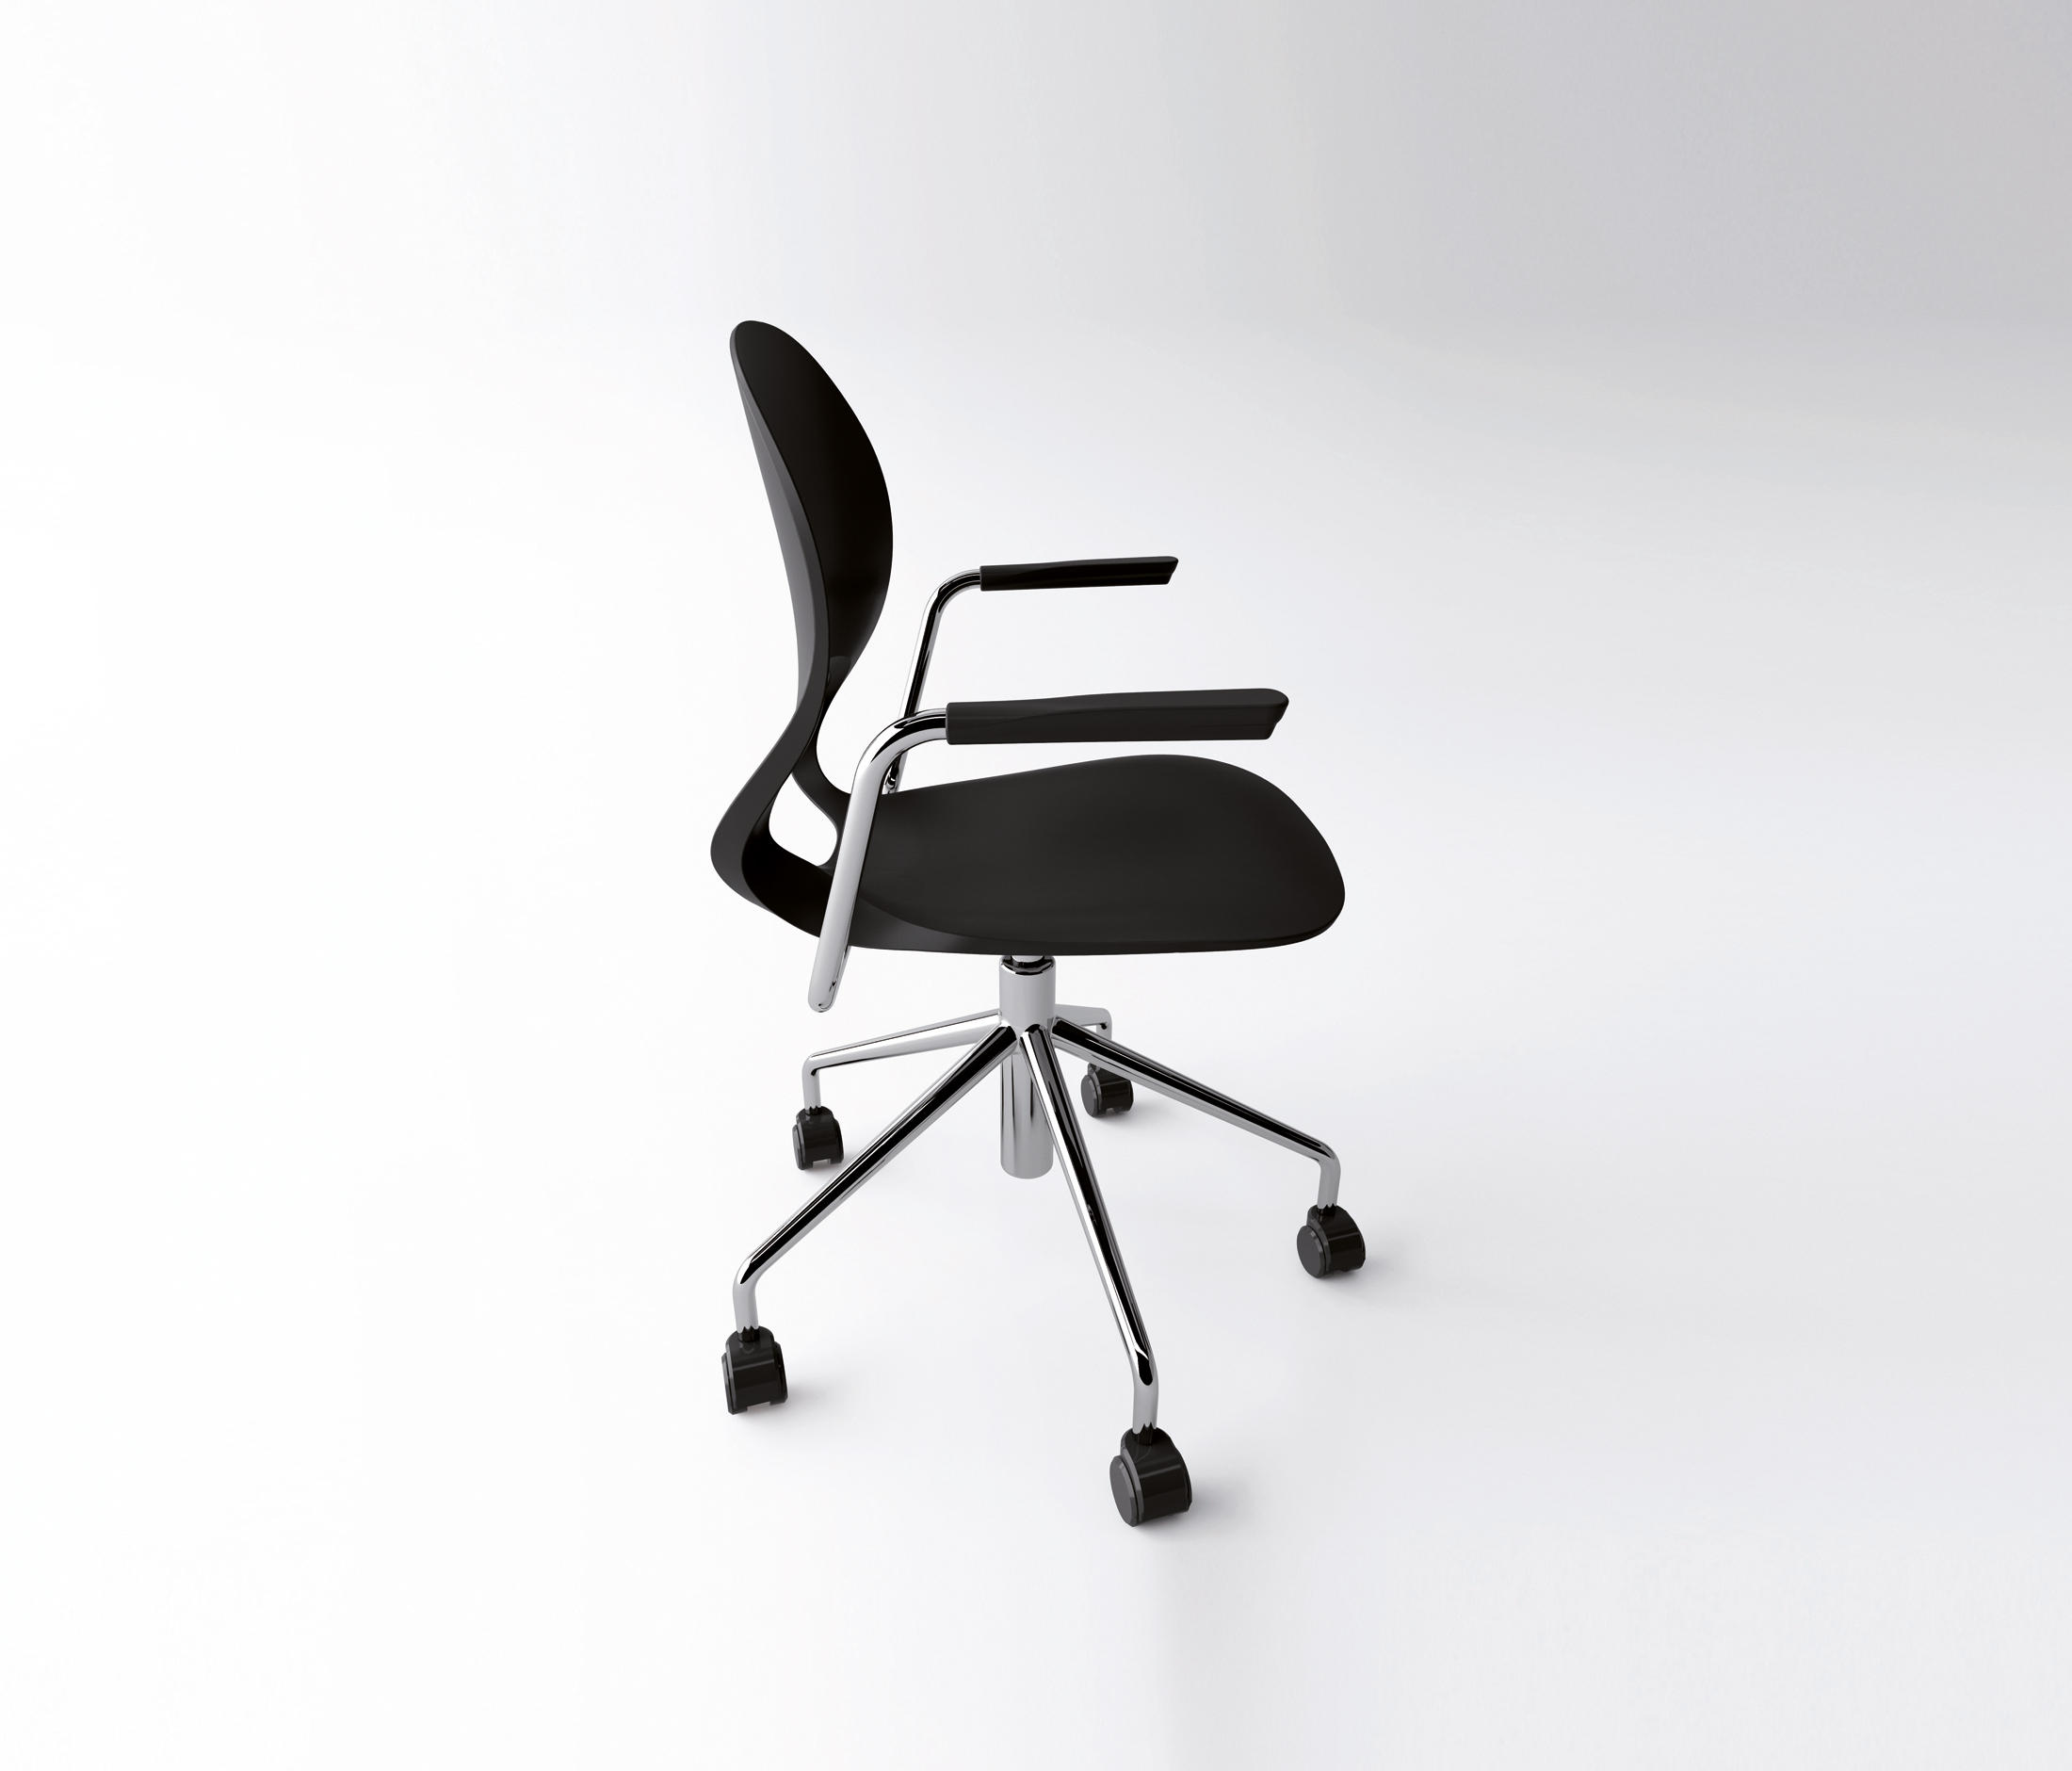 Bürostuhl modern  PIKAIA CHAIR - Multipurpose chairs from Kristalia | Architonic